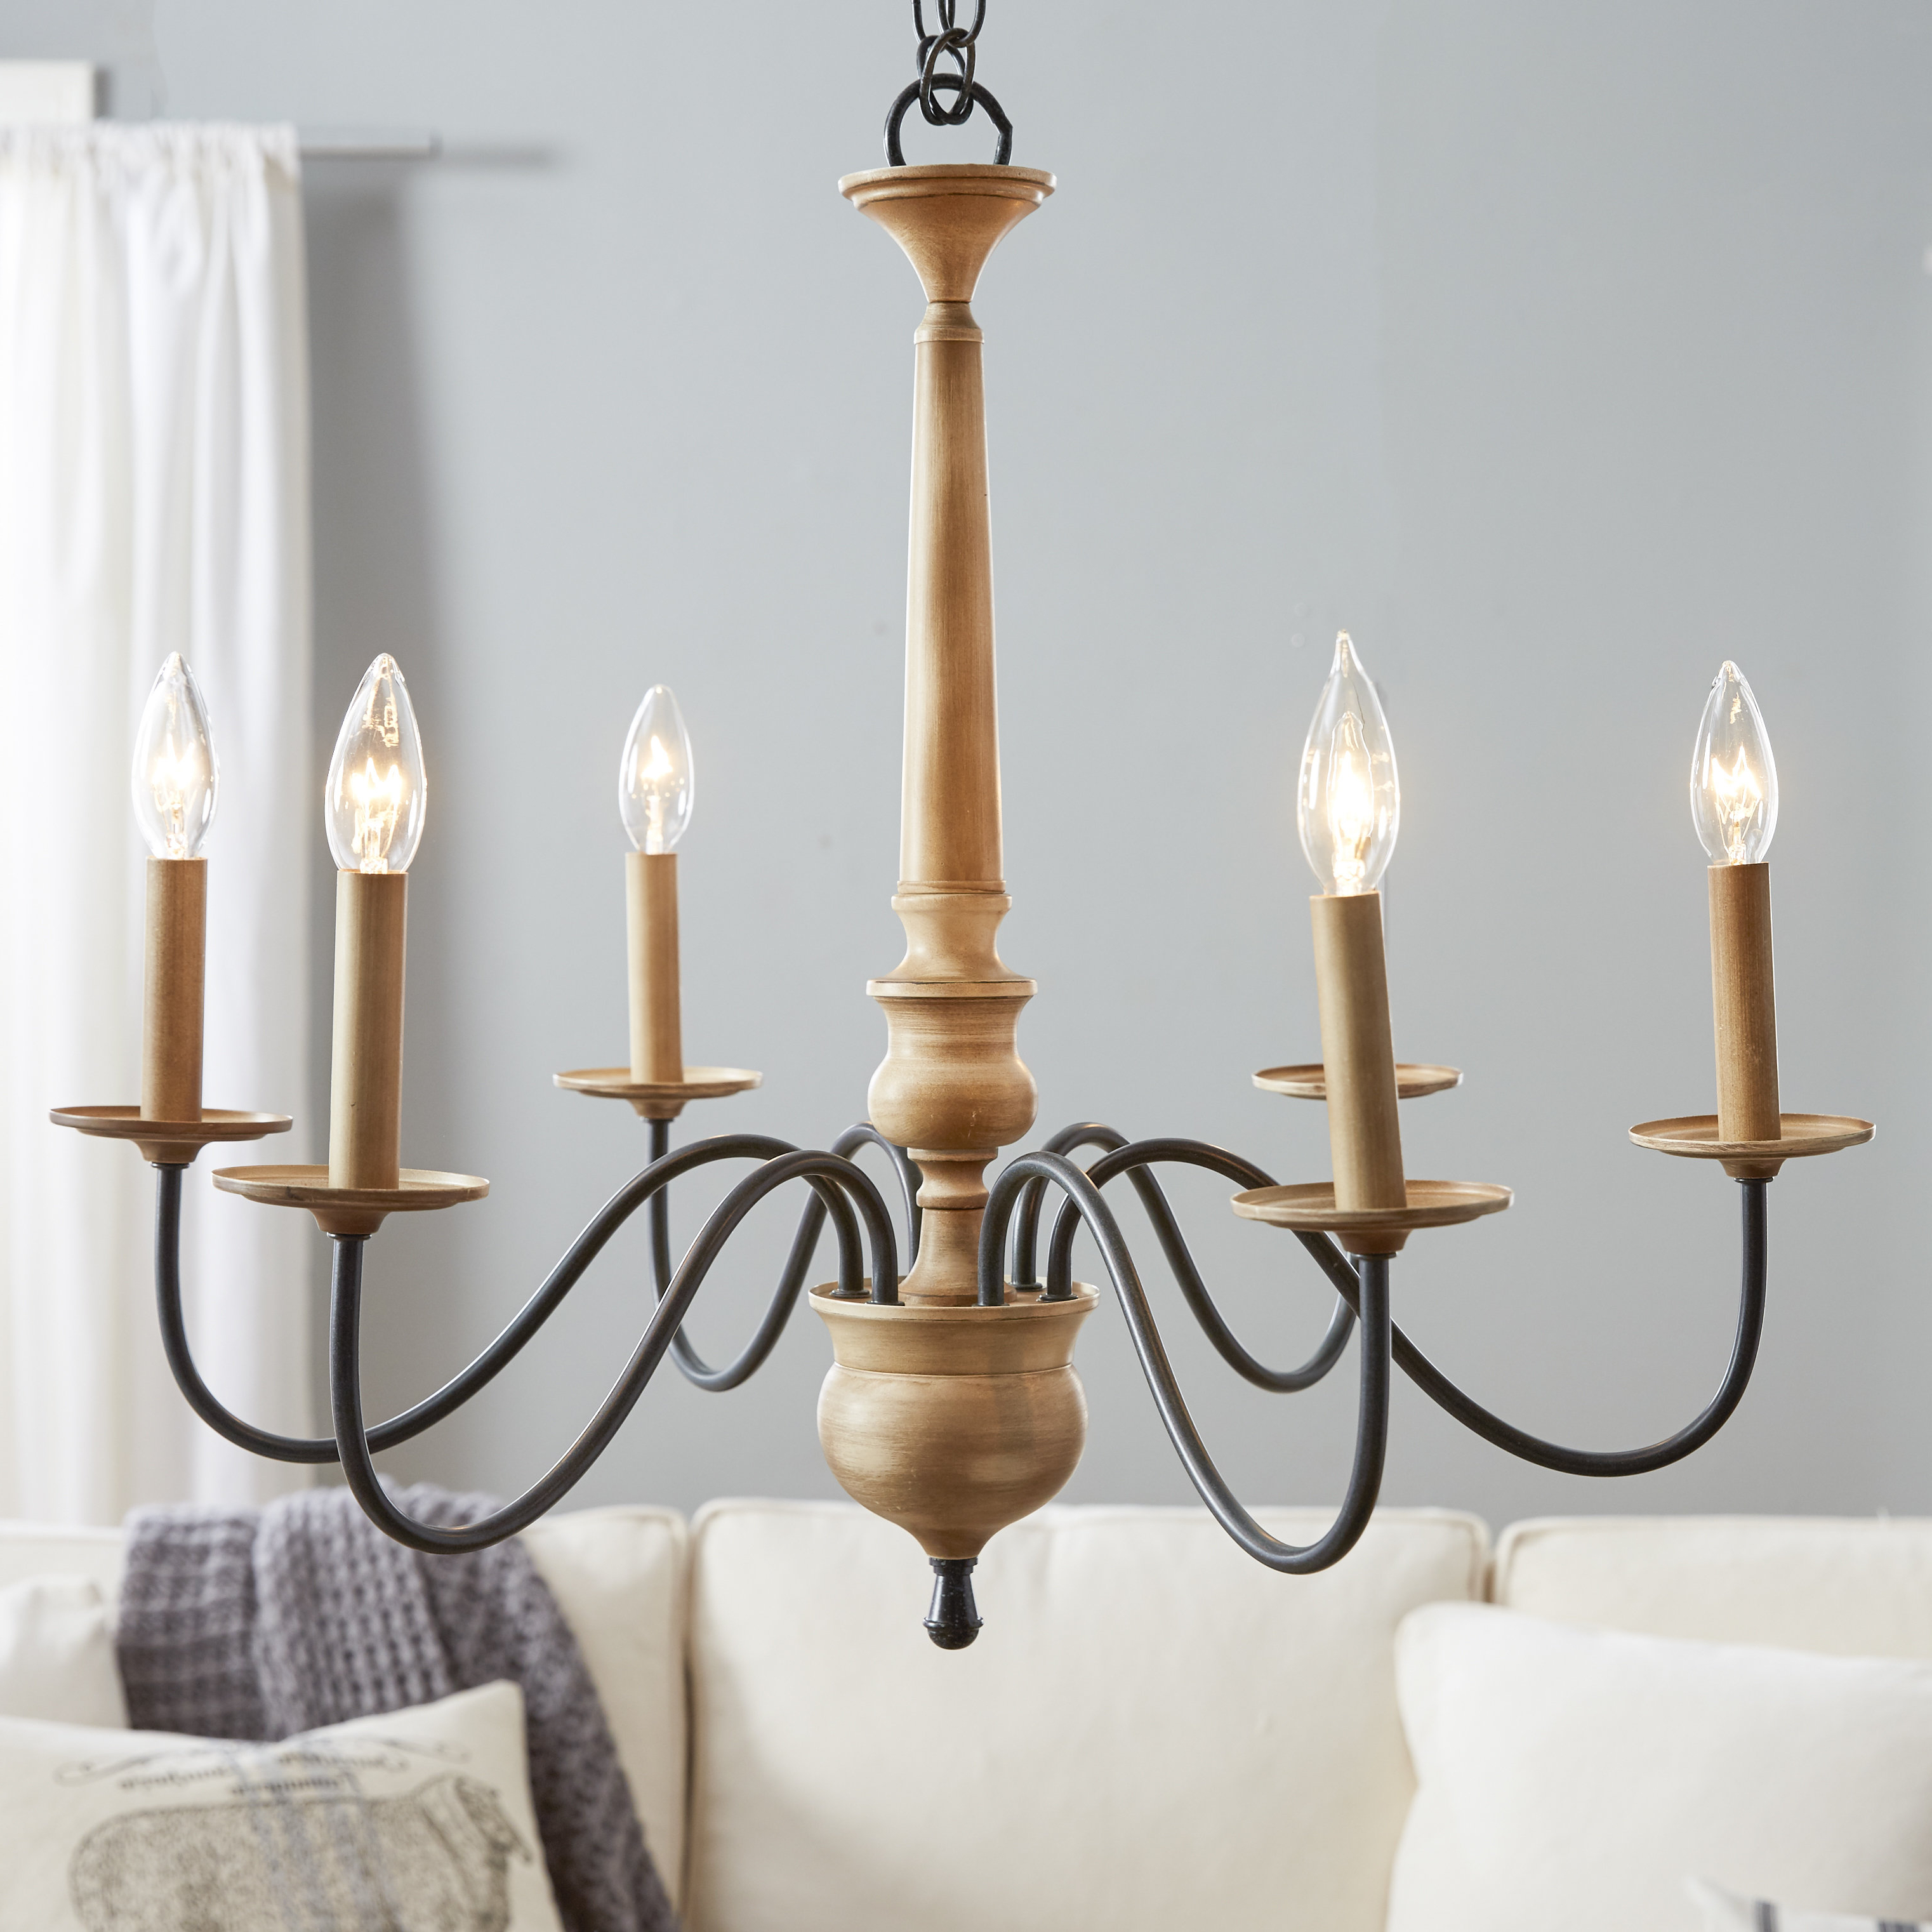 6 Light Candle Style Chandelier Pertaining To Well Known Shaylee 6 Light Candle Style Chandeliers (View 2 of 20)